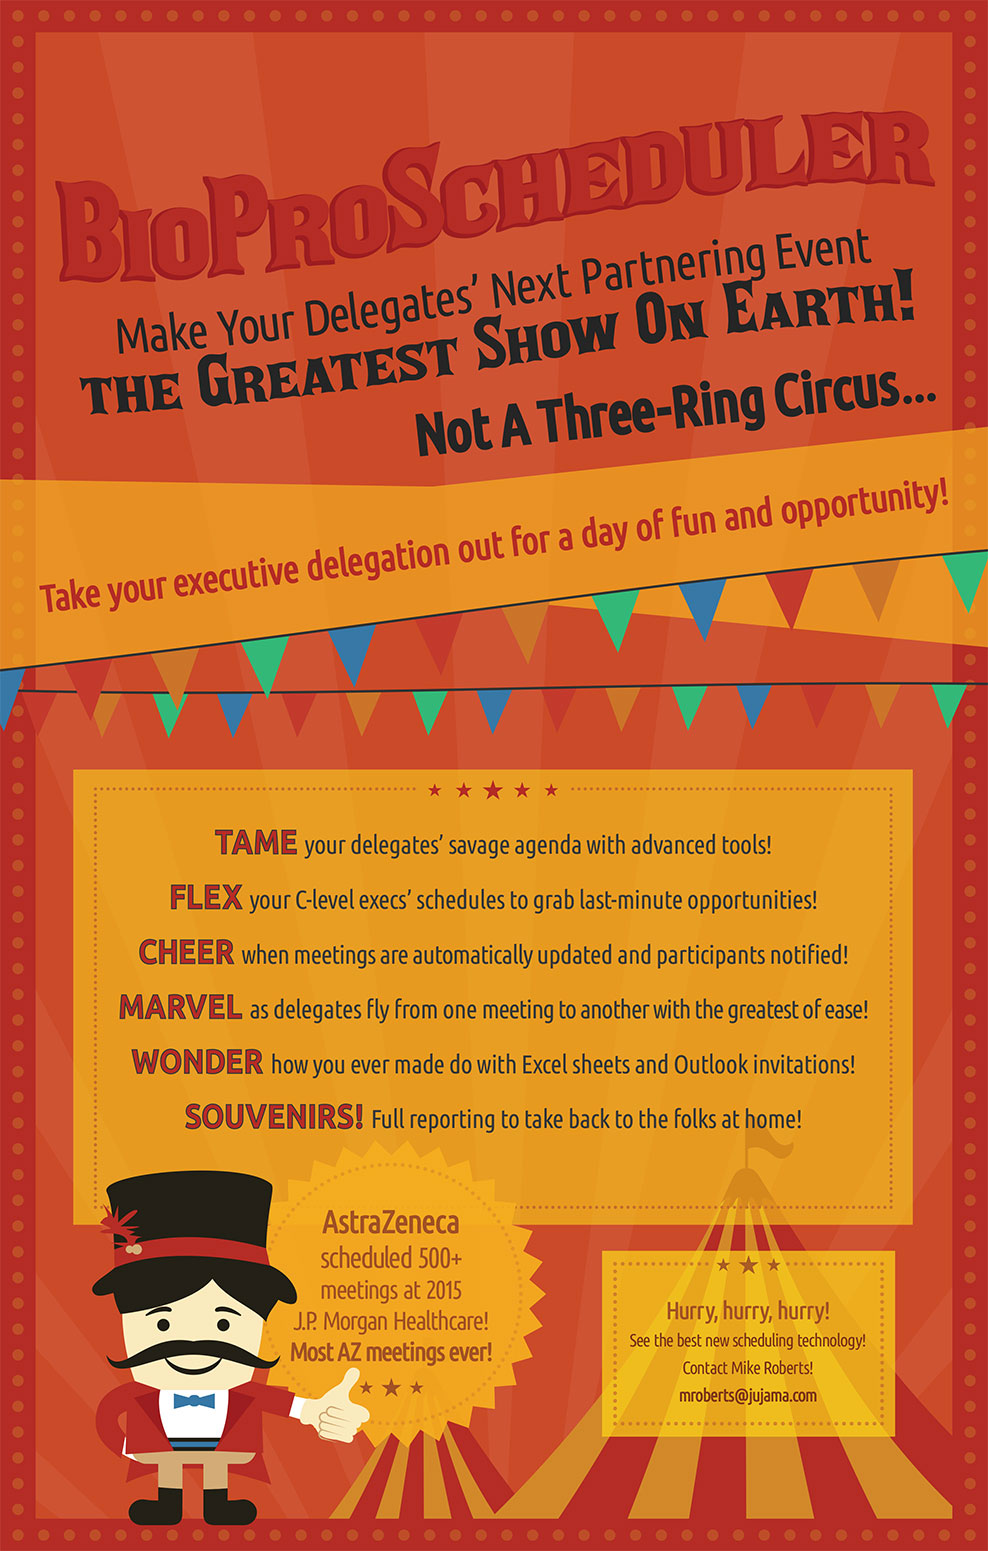 Take your executive delegation out for a day of fun and opportunity!